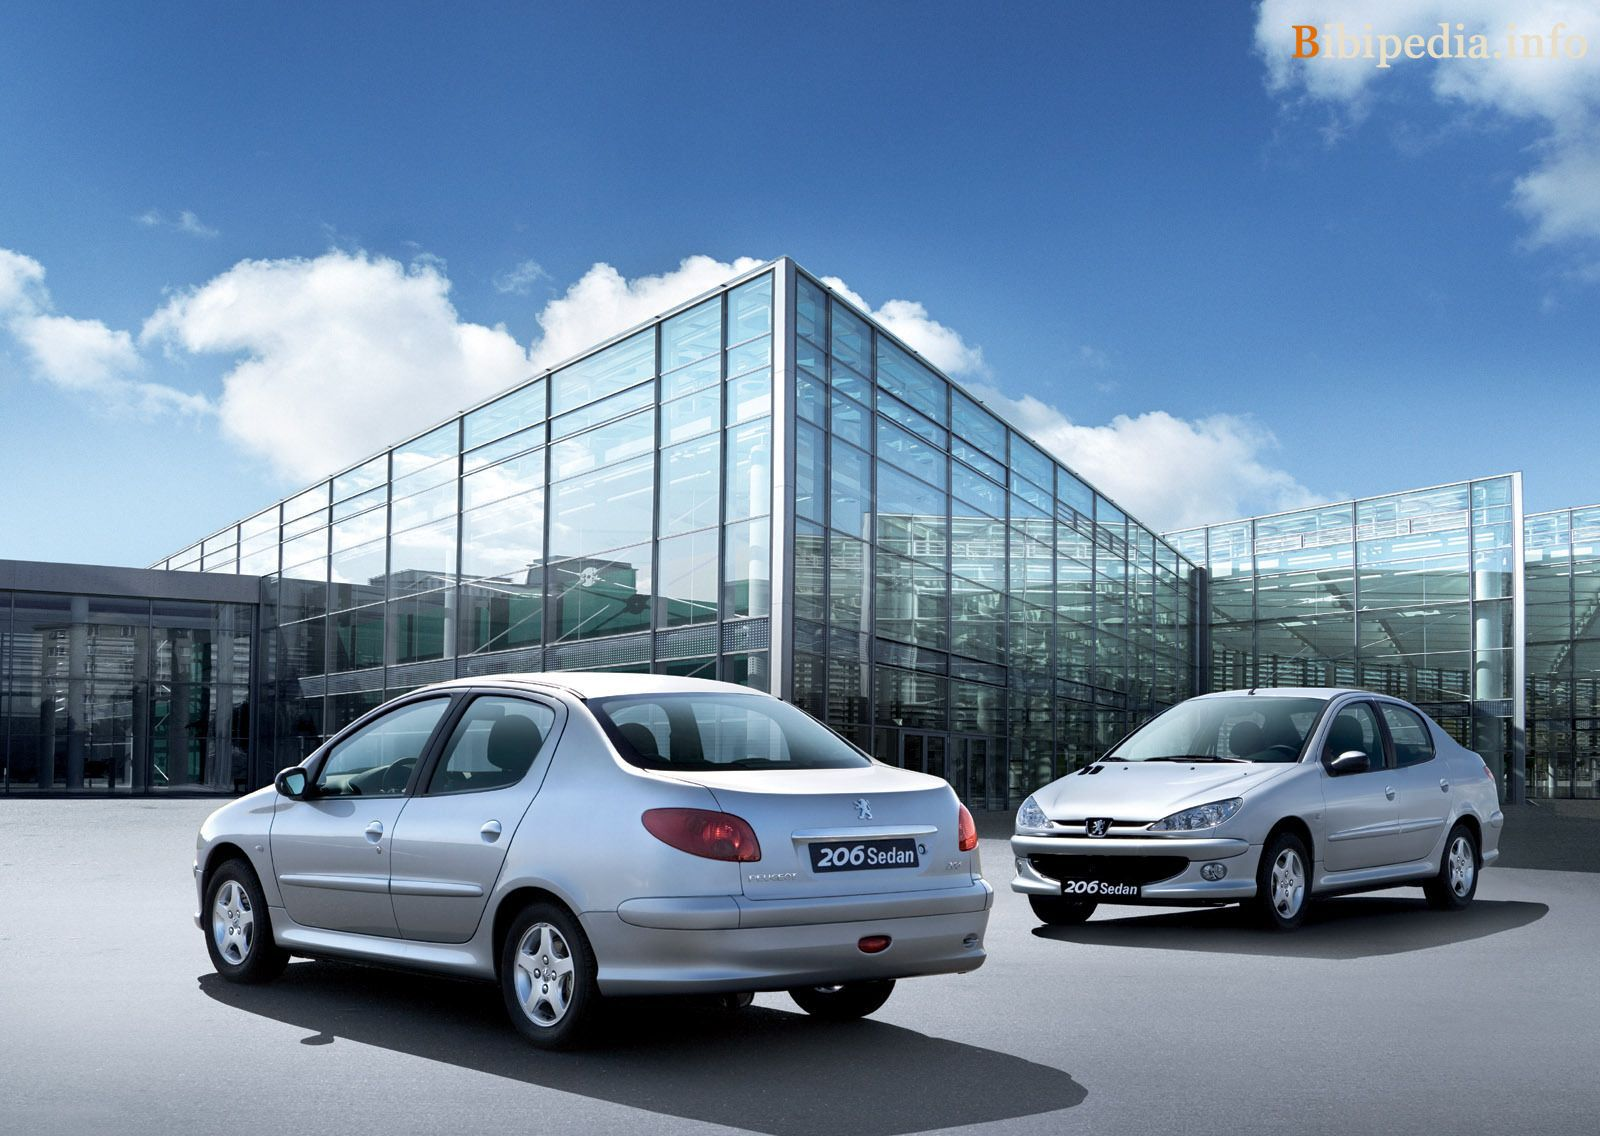 Le Meilleur Peugeot 206 Technical Specifications And Fuel Economy Ce Mois Ci